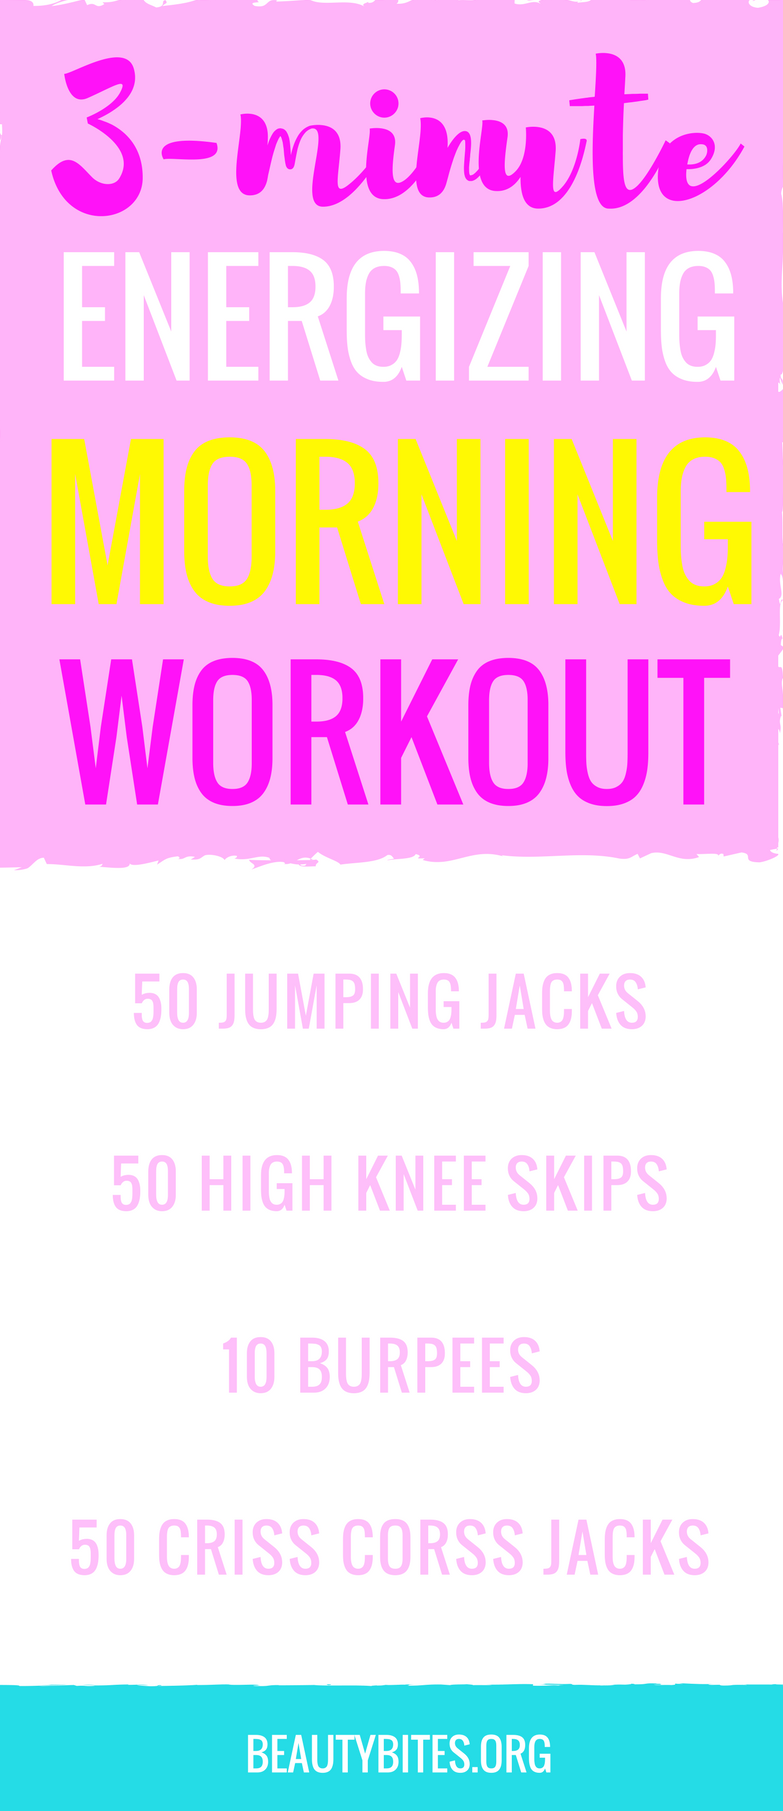 3-minute morning workout! Start your day with this quick at home workout for more energy & happiness!